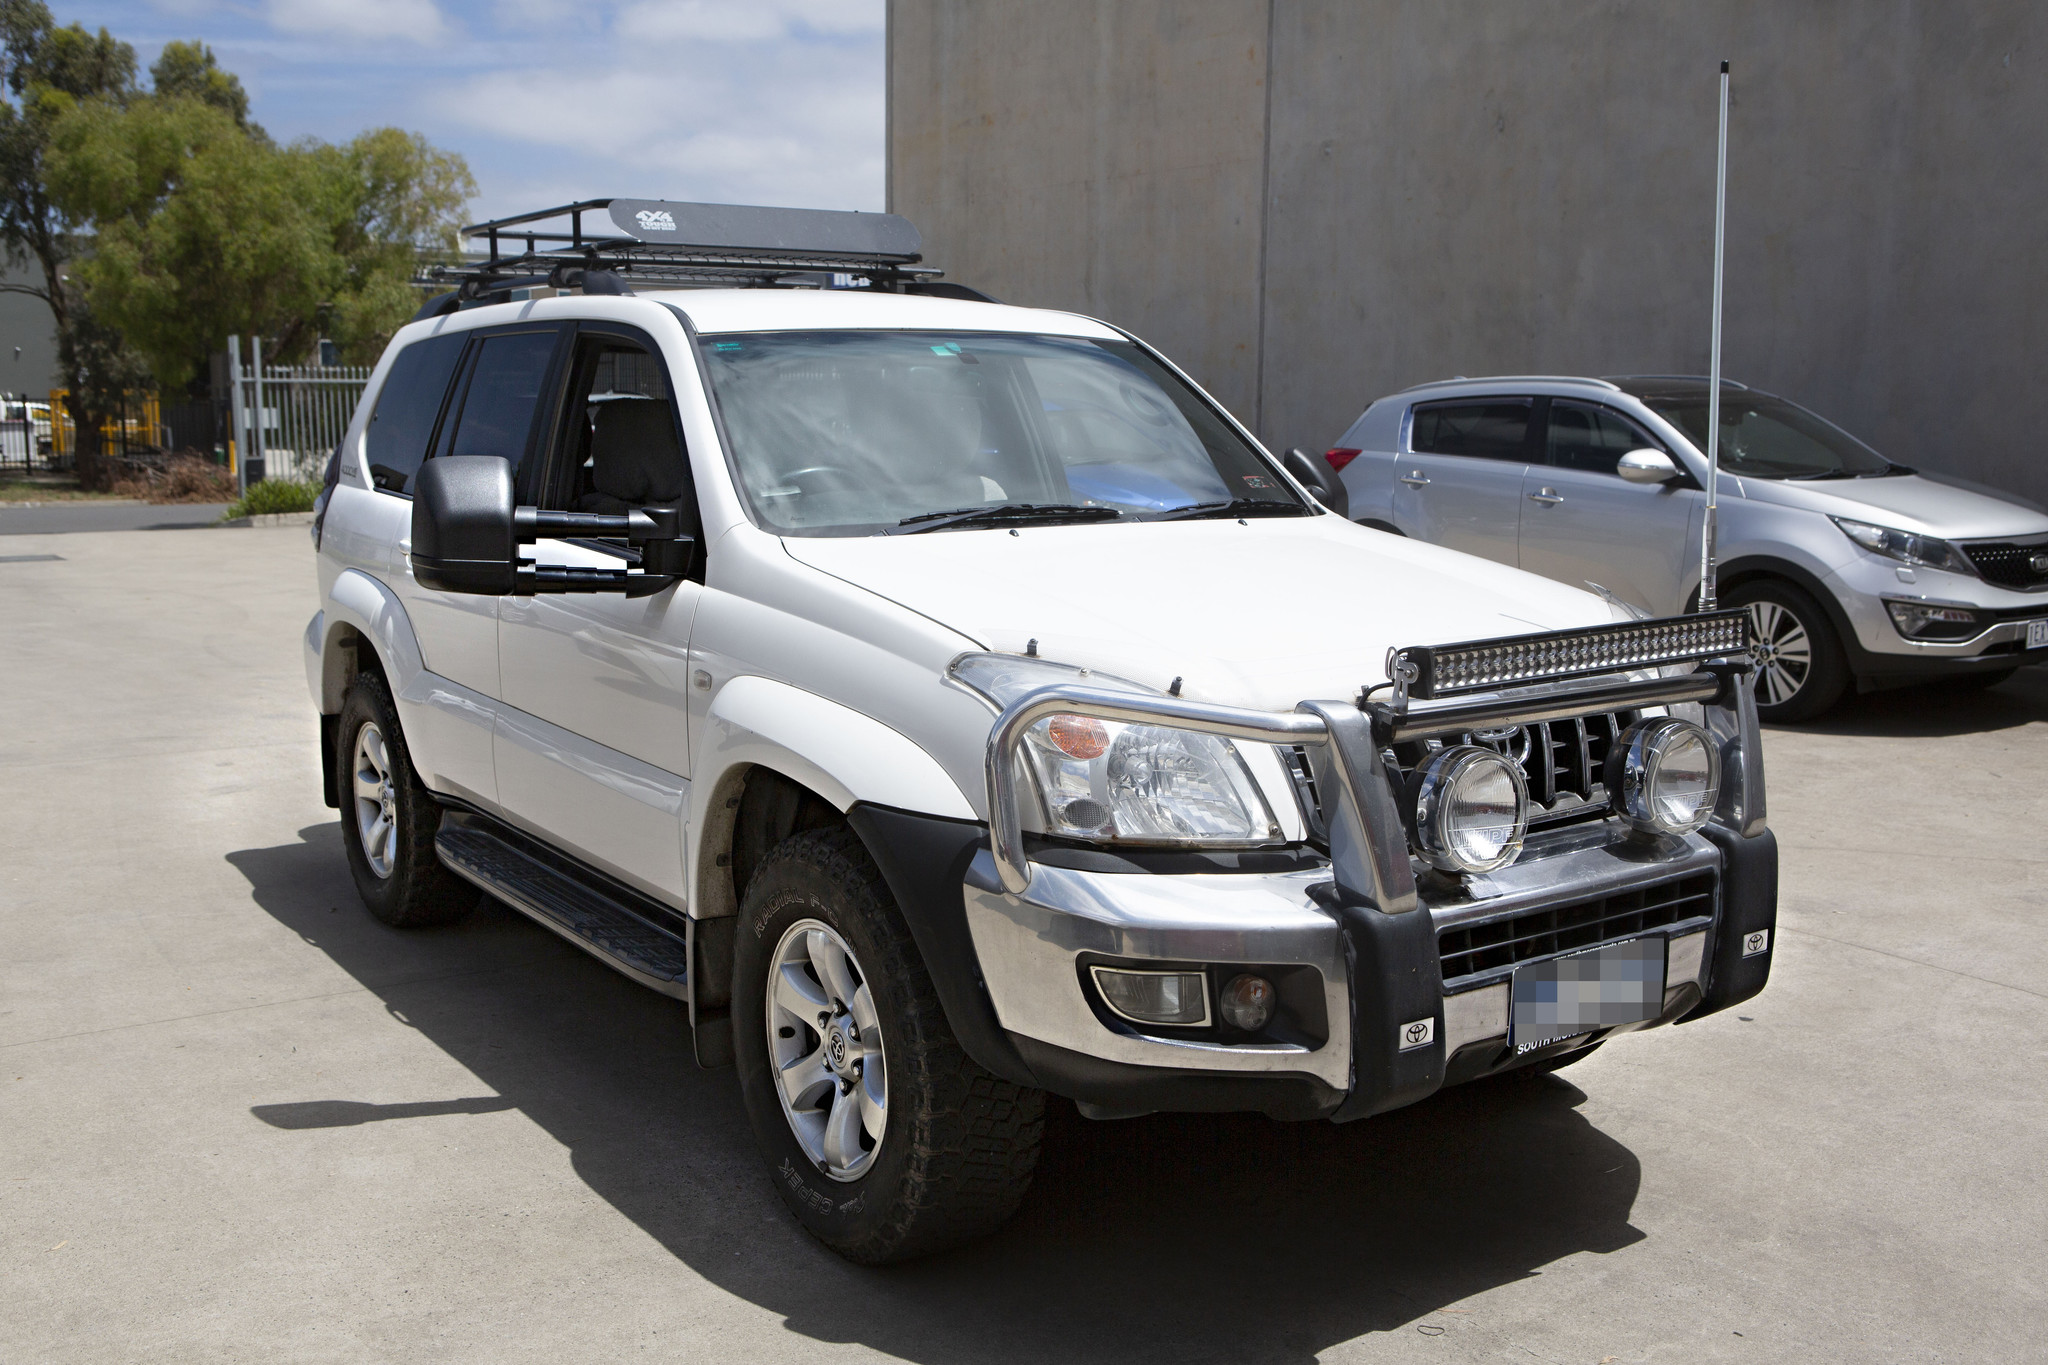 Toyota NEXT GENERATION: Clearview Towing Mirror Toyota Land Cruiser 120 serie